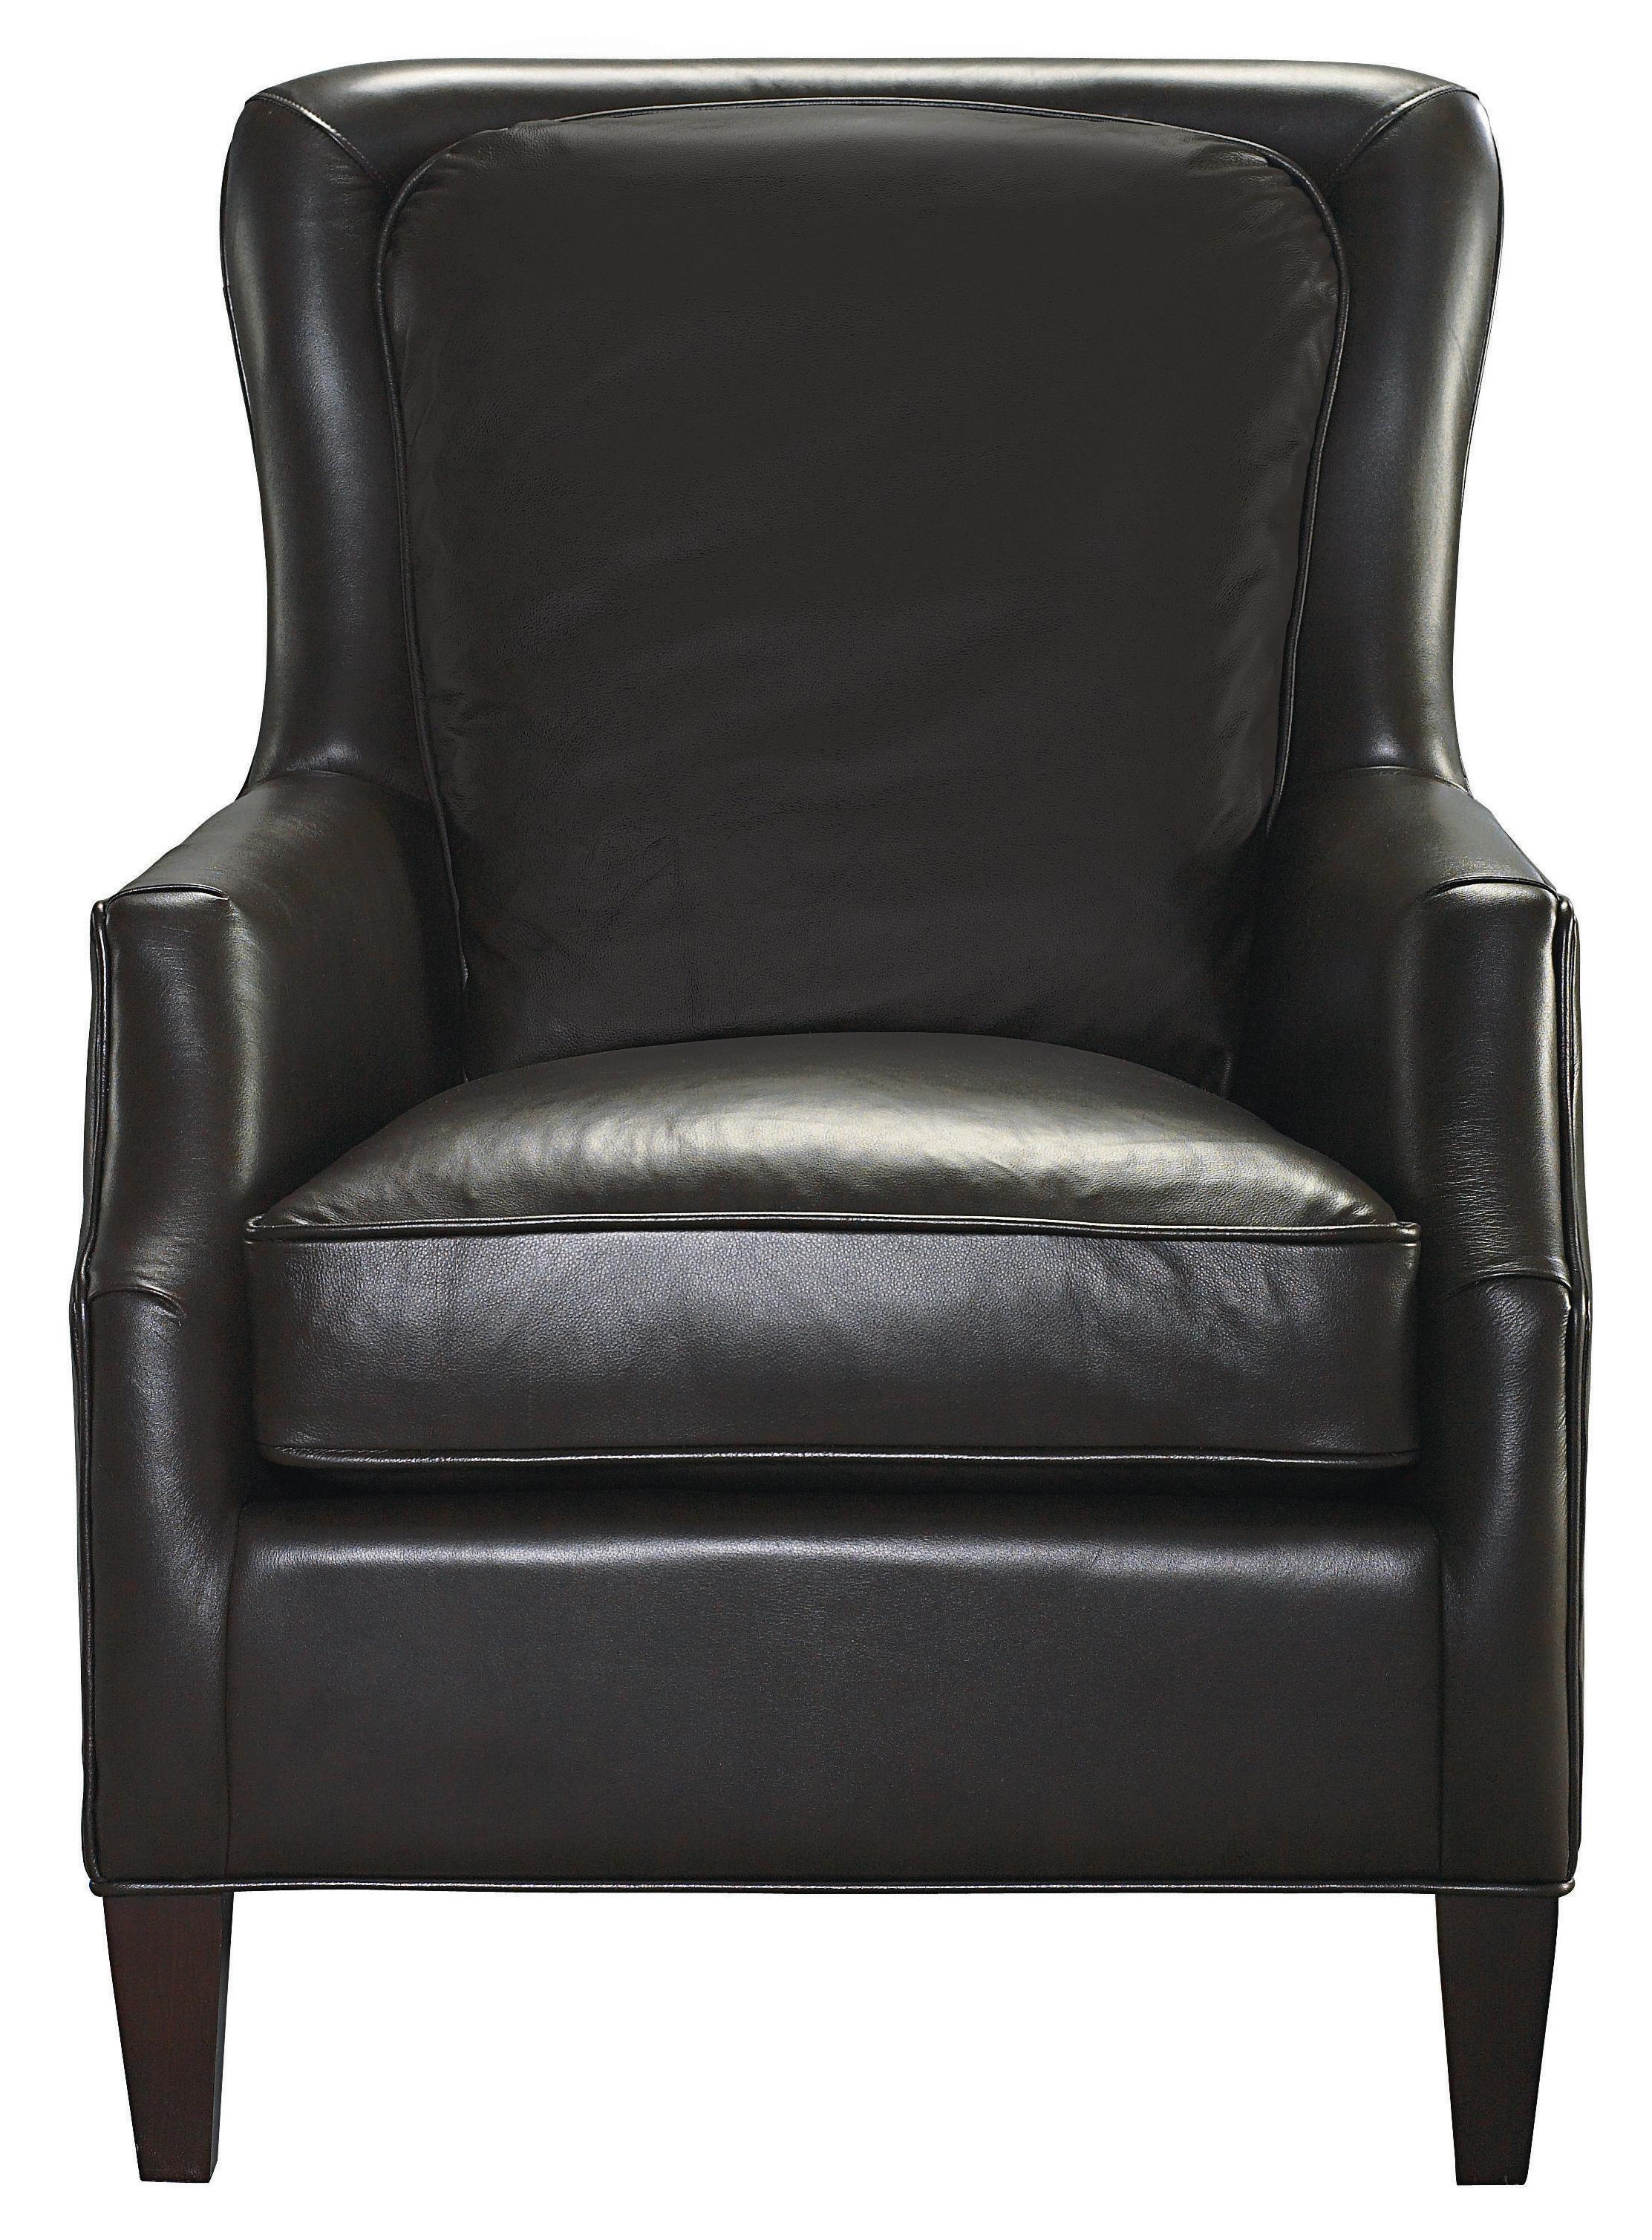 Kent  Accent Chair by Bassett at Goods Furniture